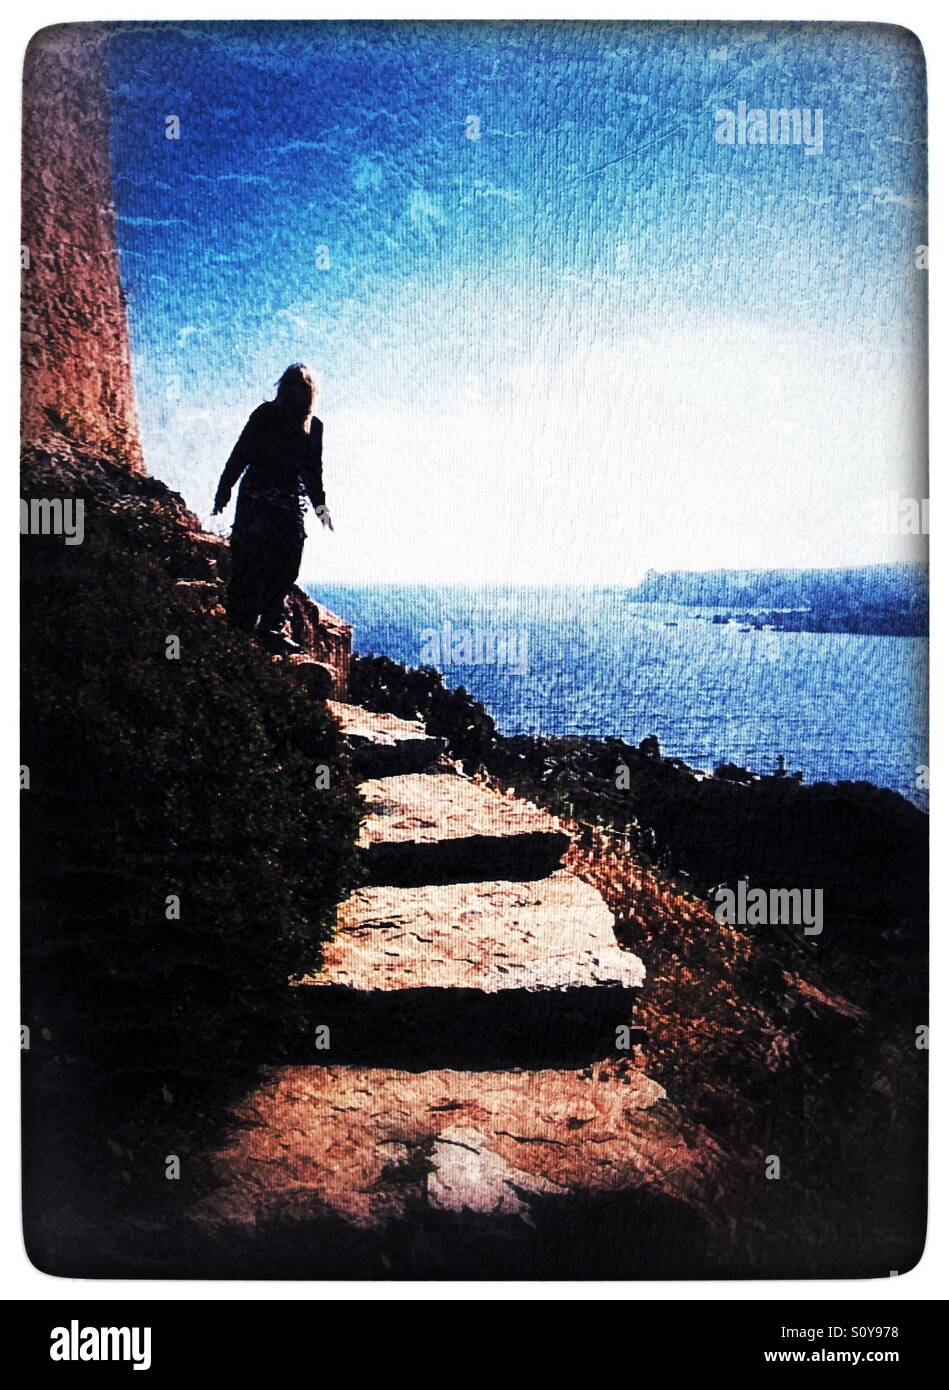 Woman on stone steps at oceans edge - Stock Image